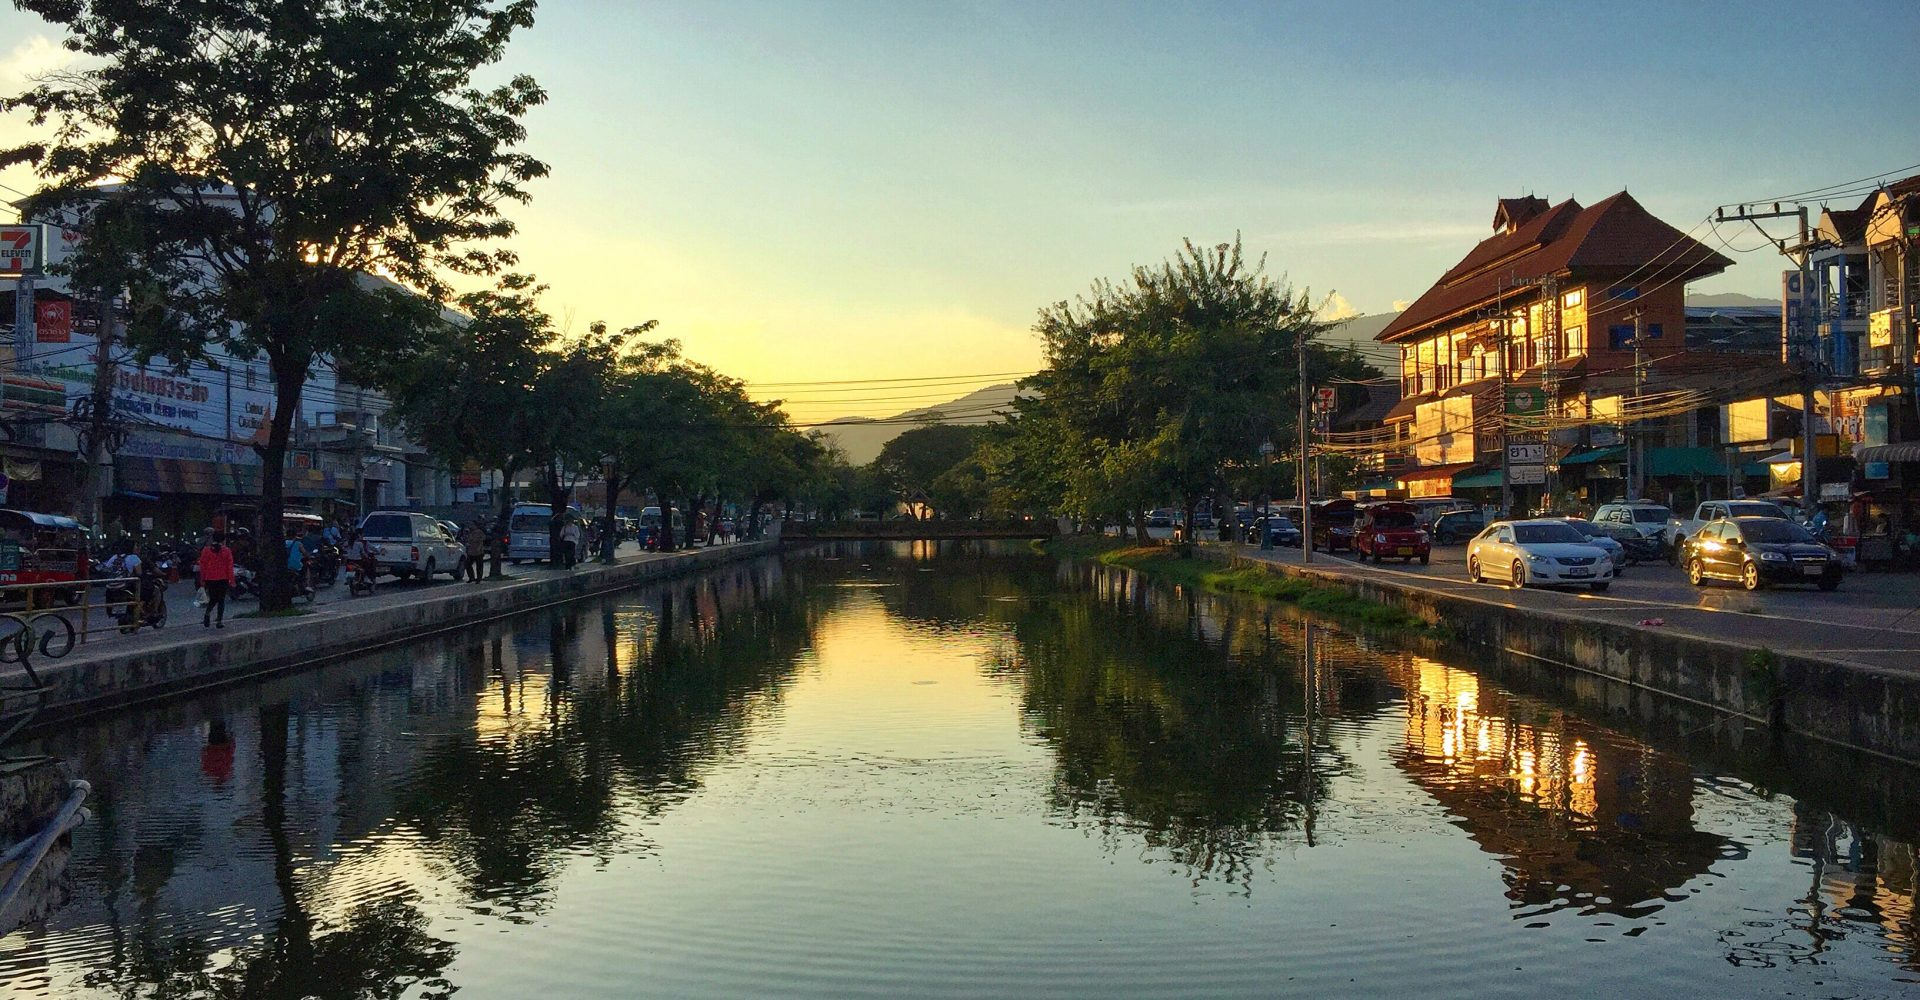 The Legal Nomads Chiang Mai Travel Guide